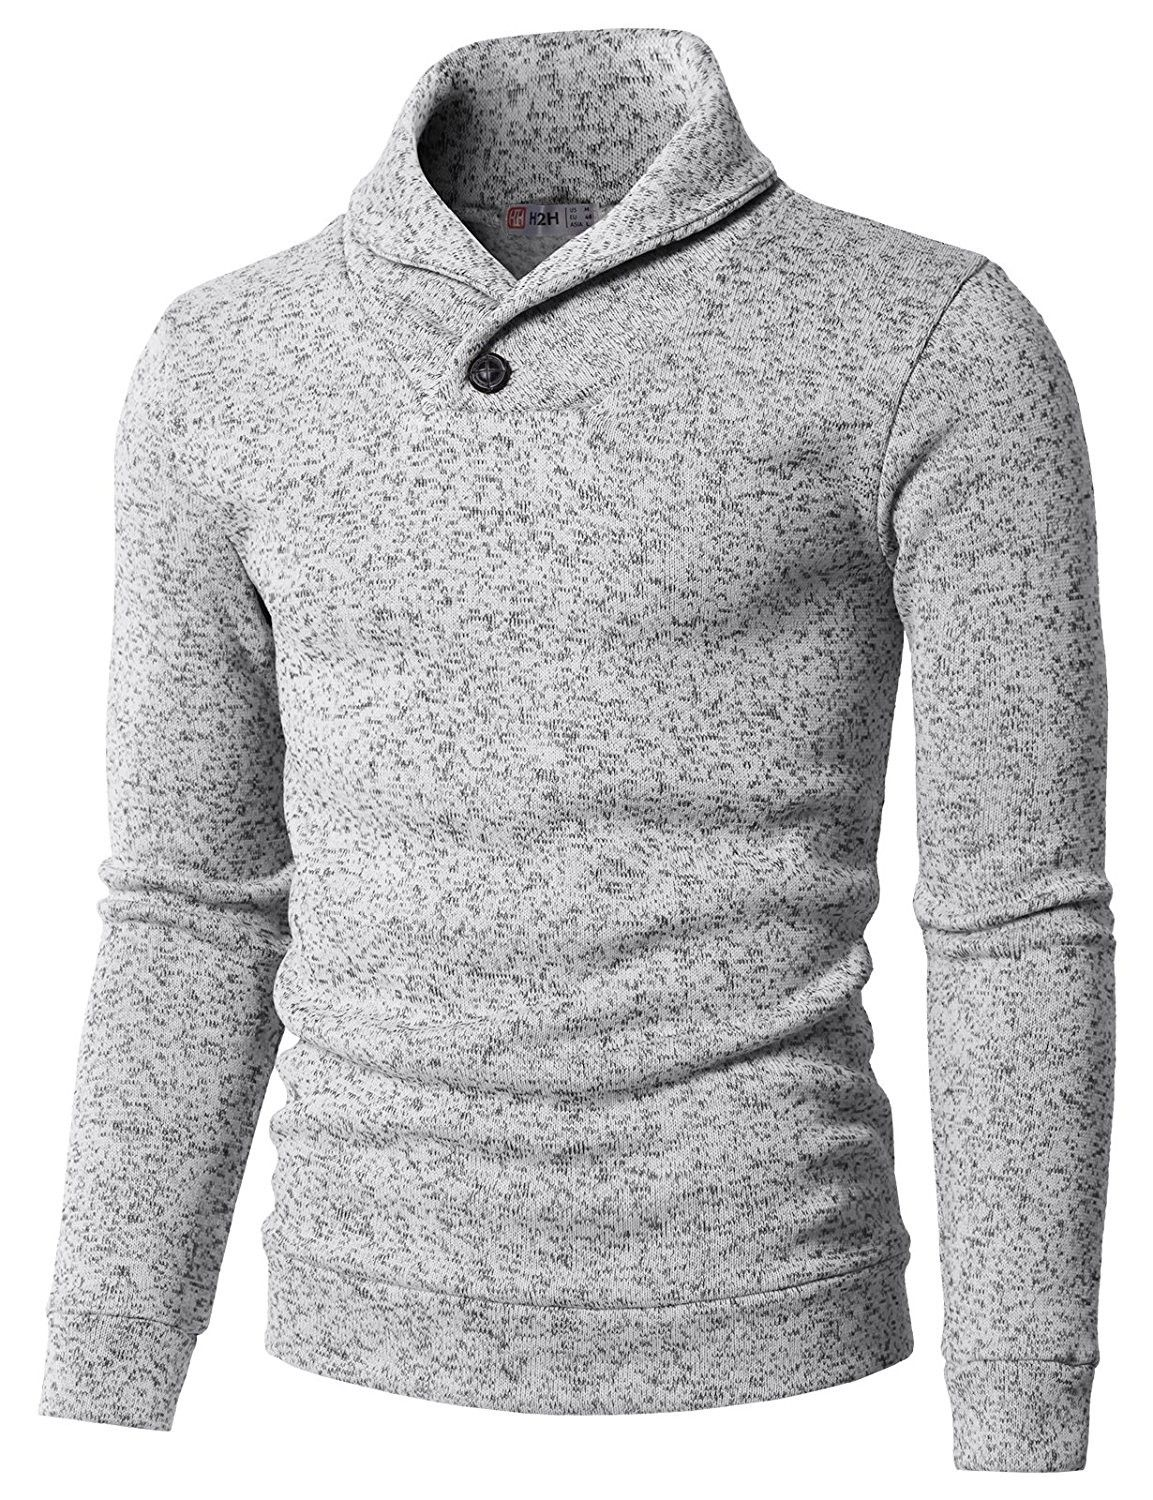 470f7f99a Men's Clothing, Sweaters, Pullovers, Mens Knitted Slim Fit Pullover Sweater  Shawl Collar With One Button Point - Kmoswl036-white - C911IQT6477 #men  #fashion ...